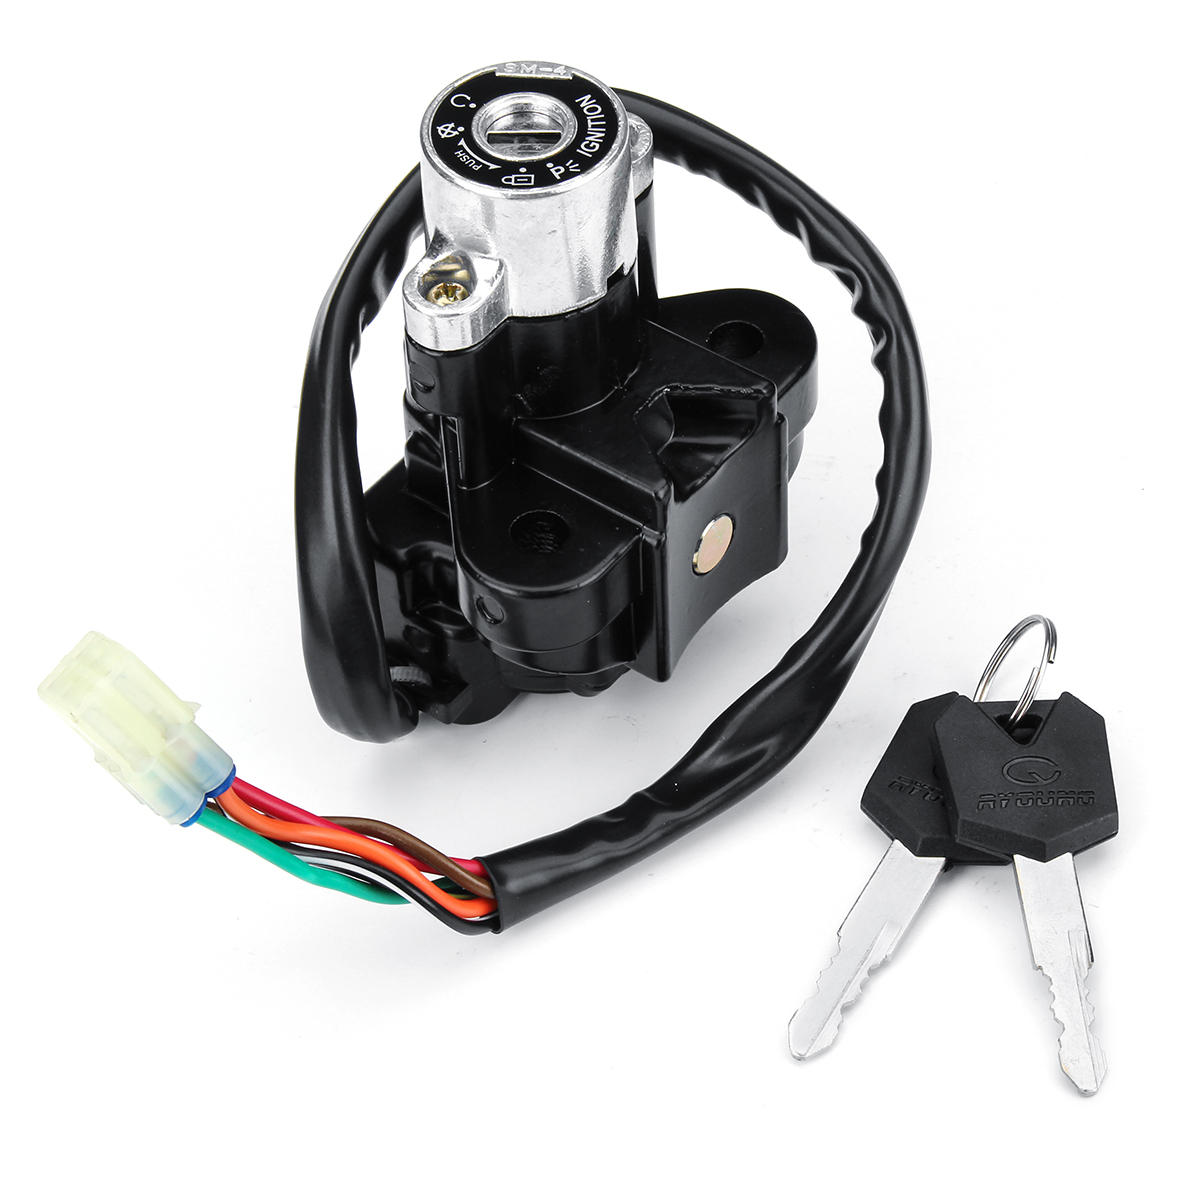 Ignition Starter Switch Lock With Keys For Suzuki GZ125 GZ250 GSF600 on ignition solenoid, ignition distributor, ignition diagram, ignition cable,